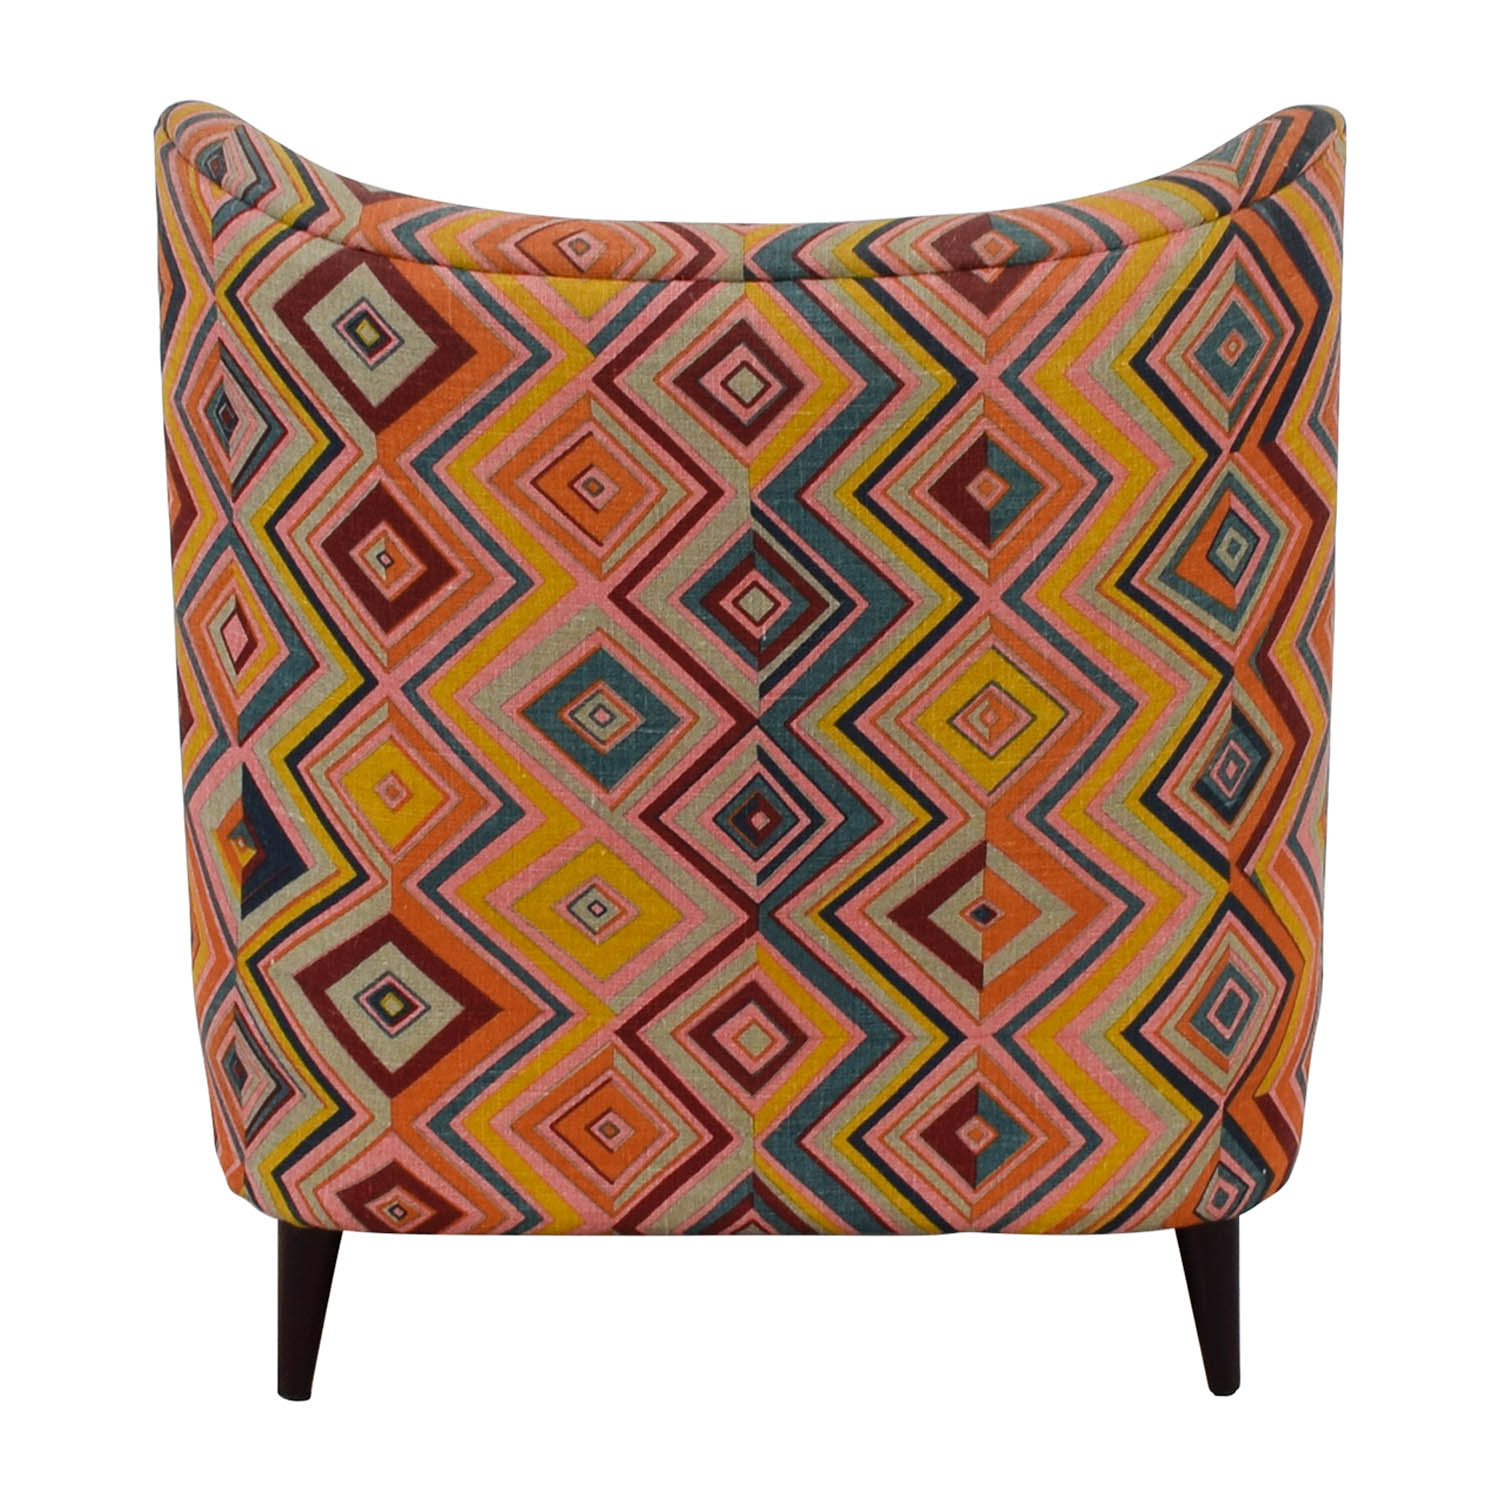 Manor and Mews Manor and Mews Multi Colored Upholstered Diamond Chair second hand